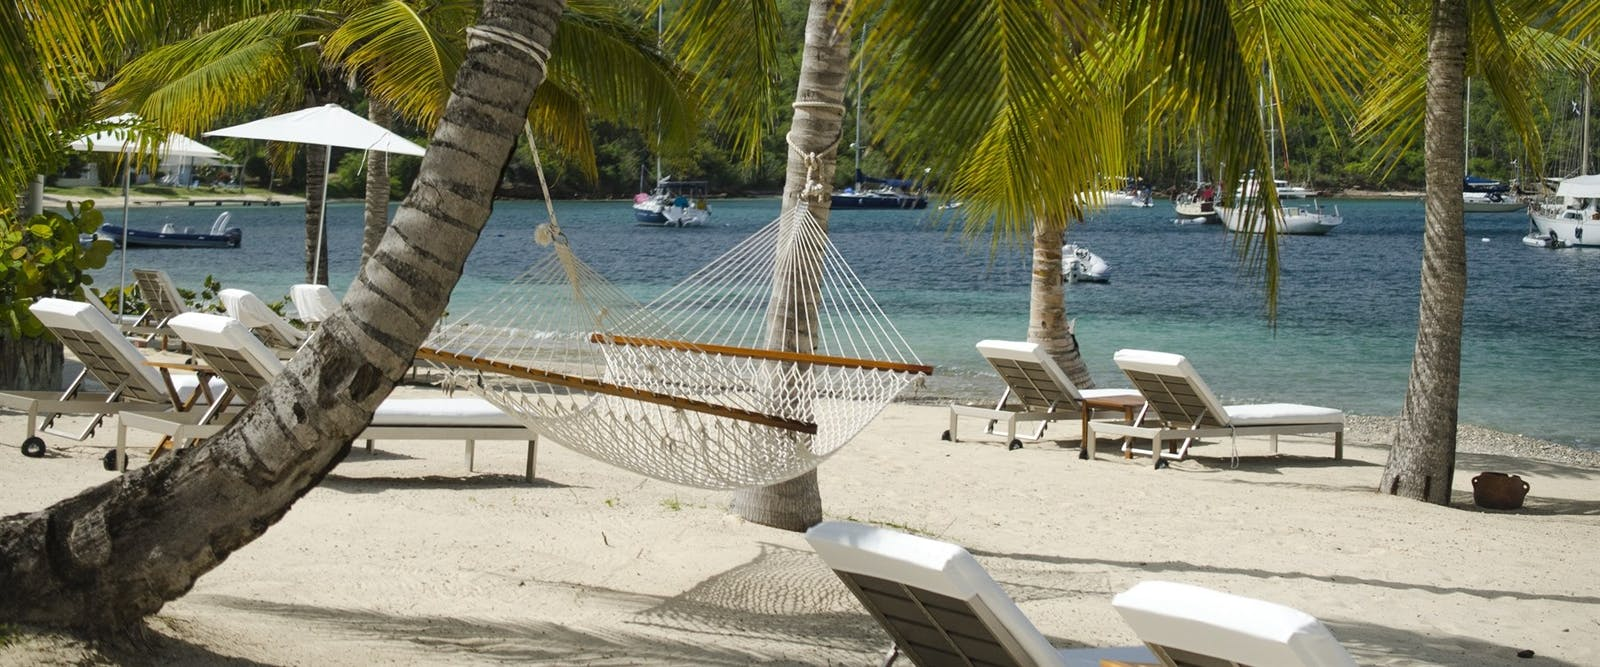 Hammock on the Beach at The Inn at English Harbour, Antigua